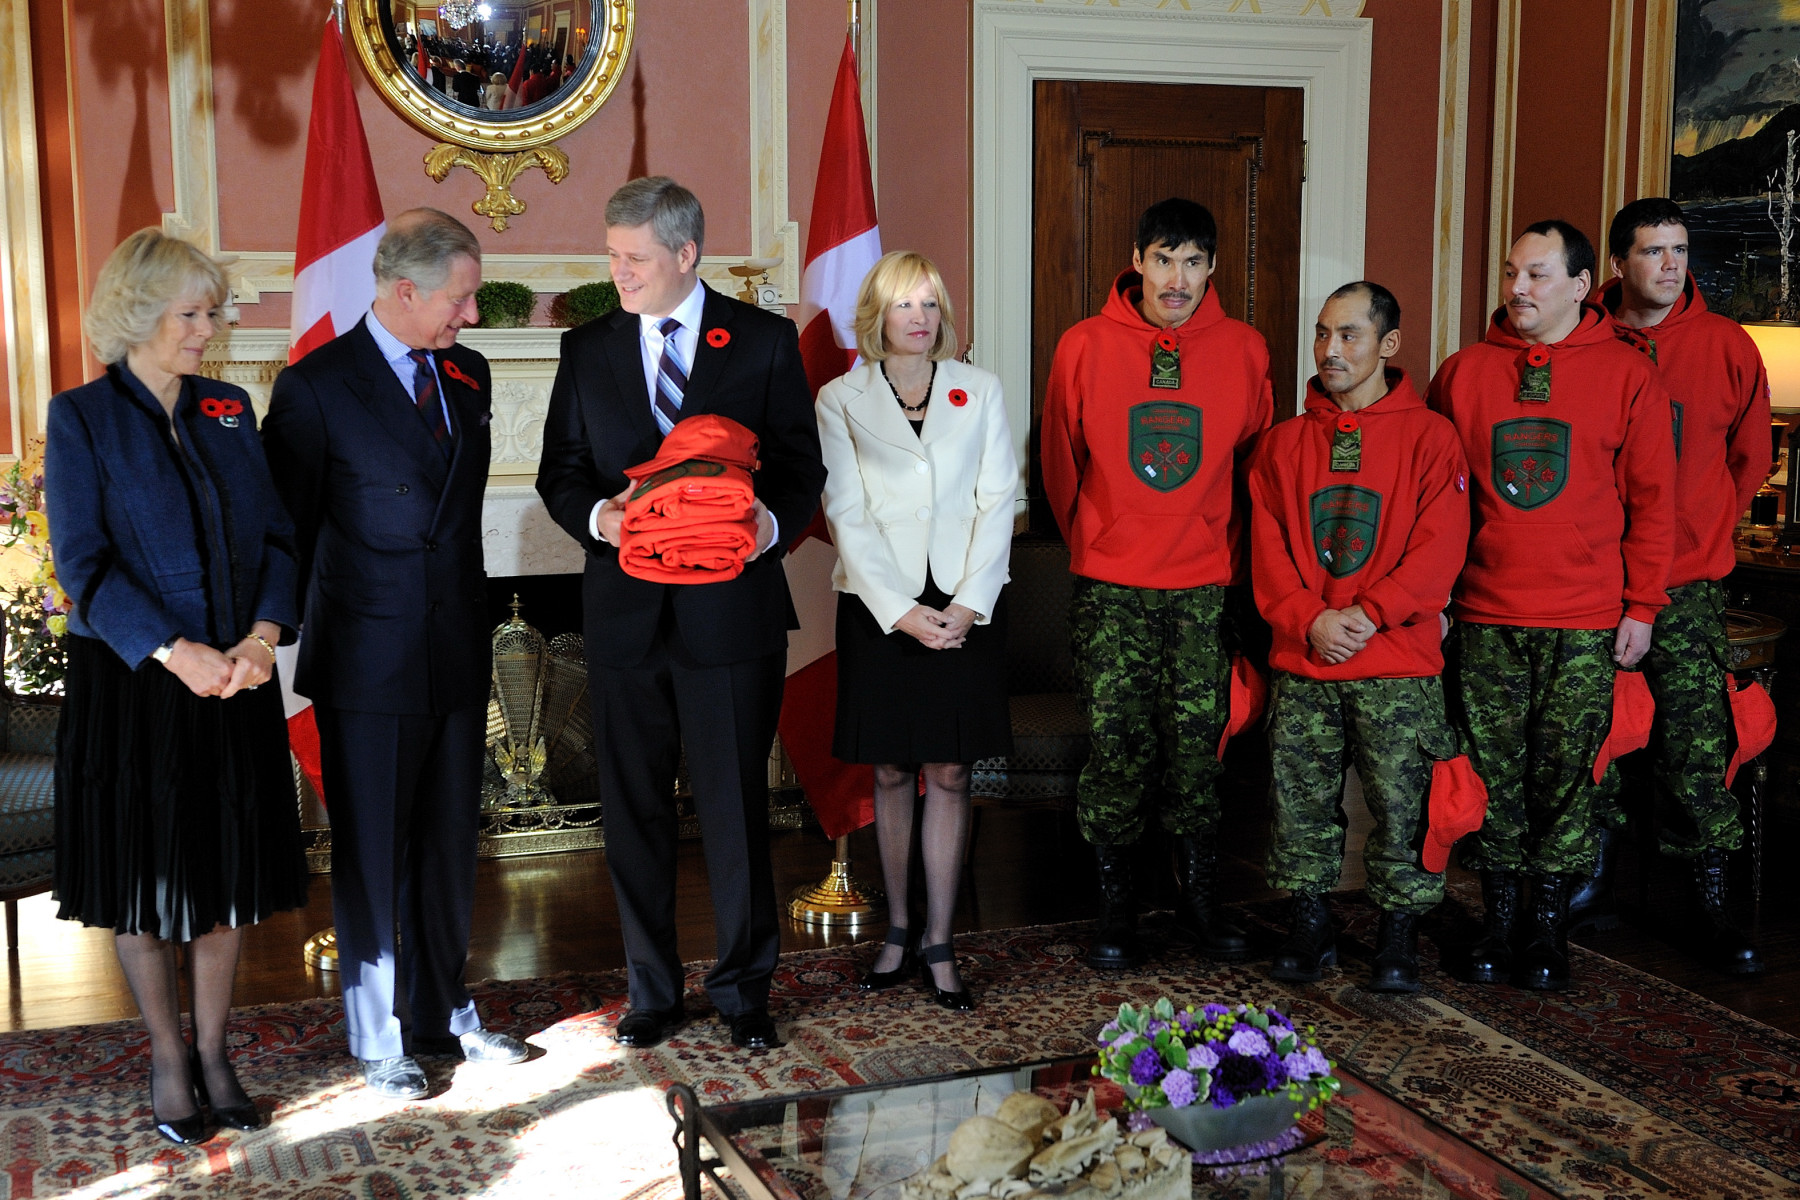 Their Royal Highnesses also met Canadian Prime Minister, Mr. Stephen Harper, and his wife, Mrs. Laureen Harper, who introduced them to members of the Canadian Rangers.